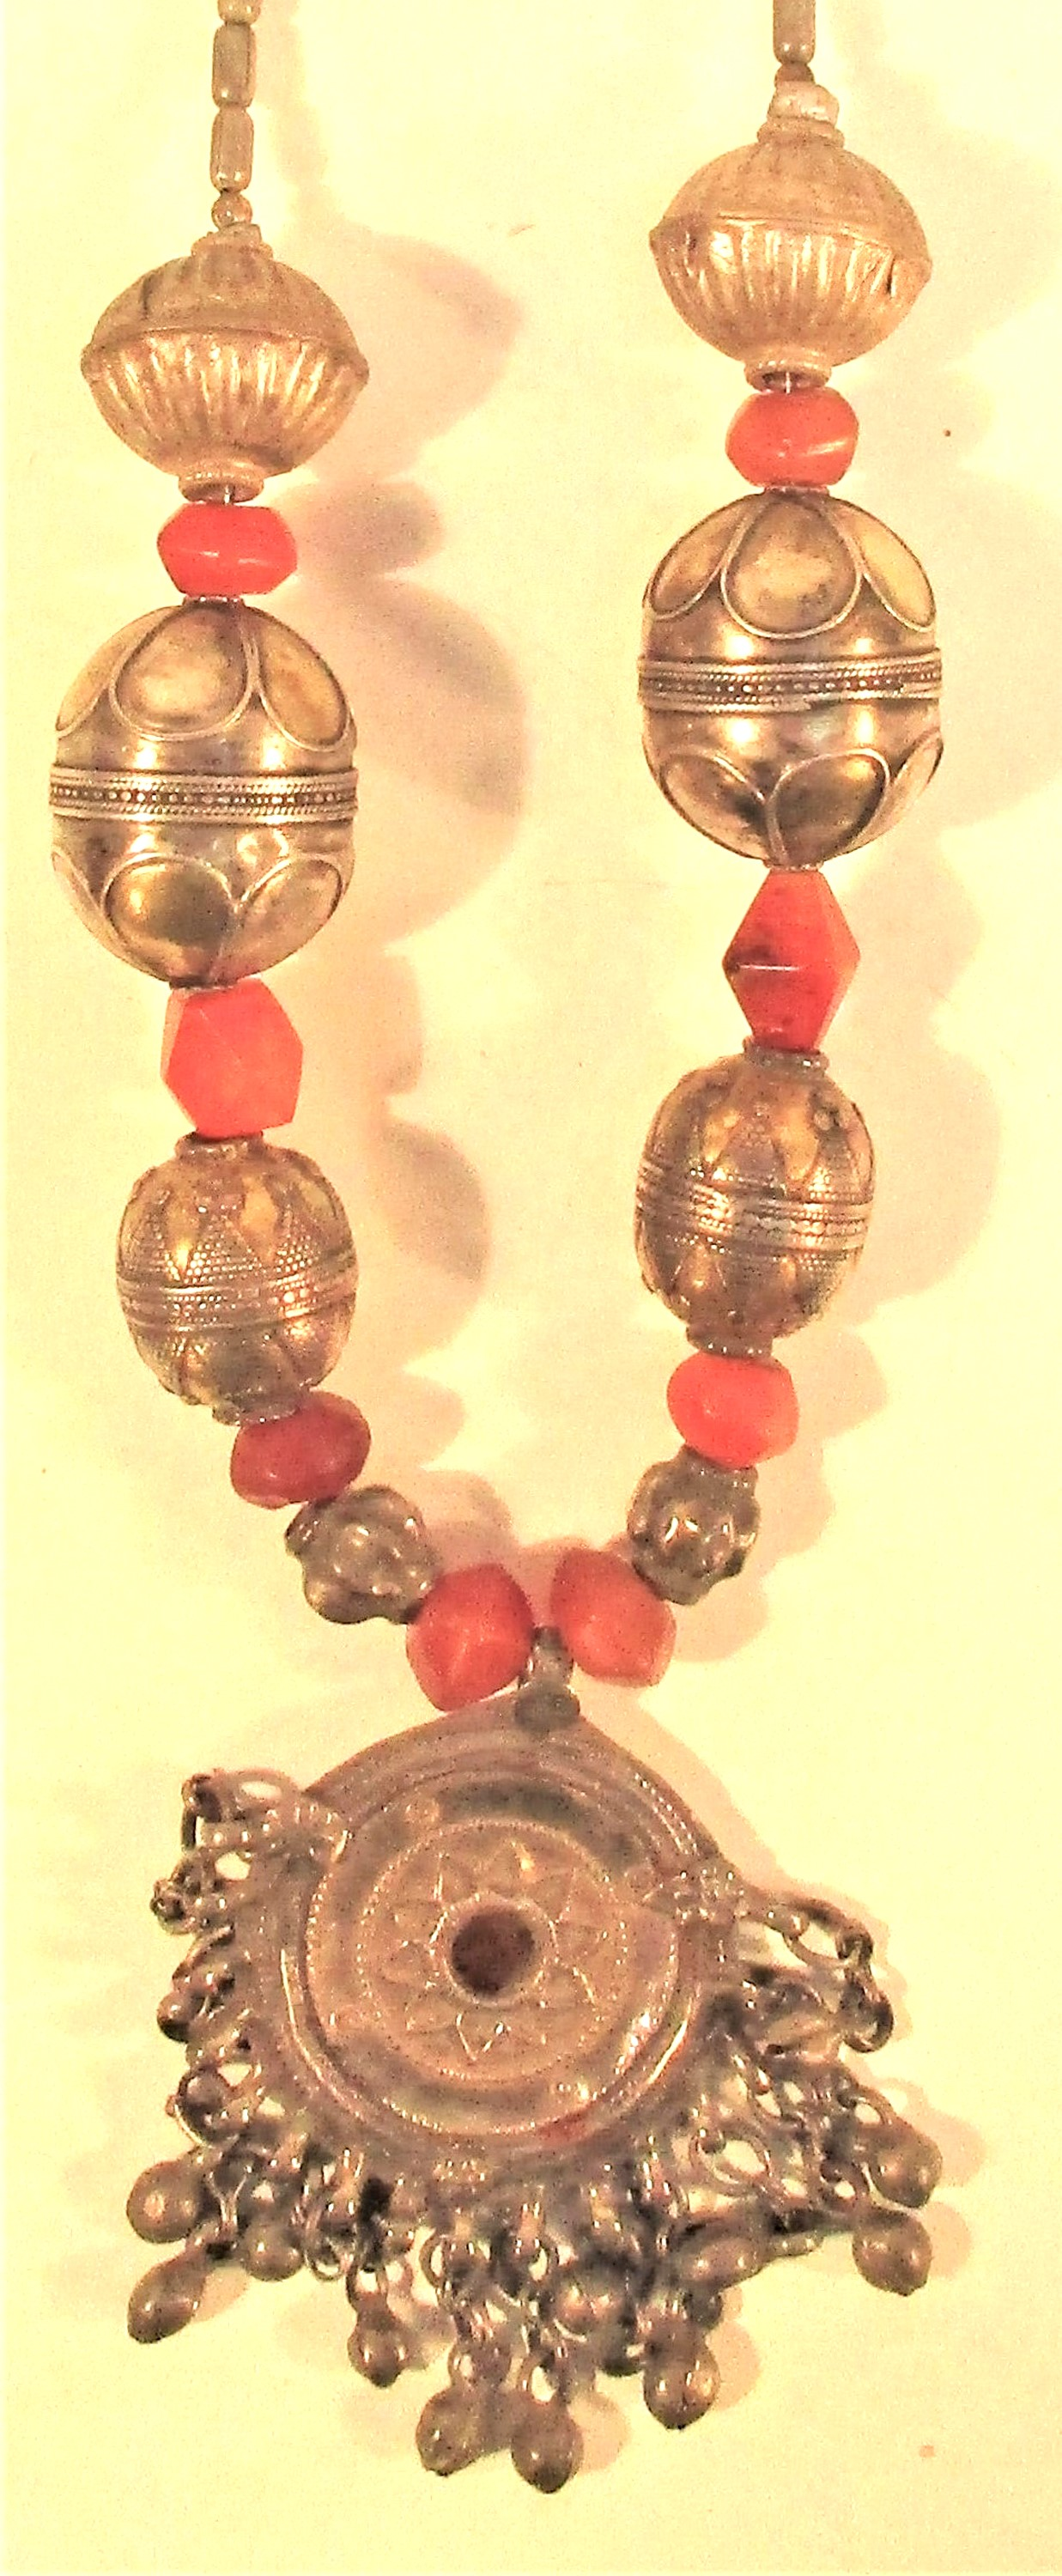 Afghan necklace with antique pendant and cornelian and metal beads. 30cm. - Image 2 of 2